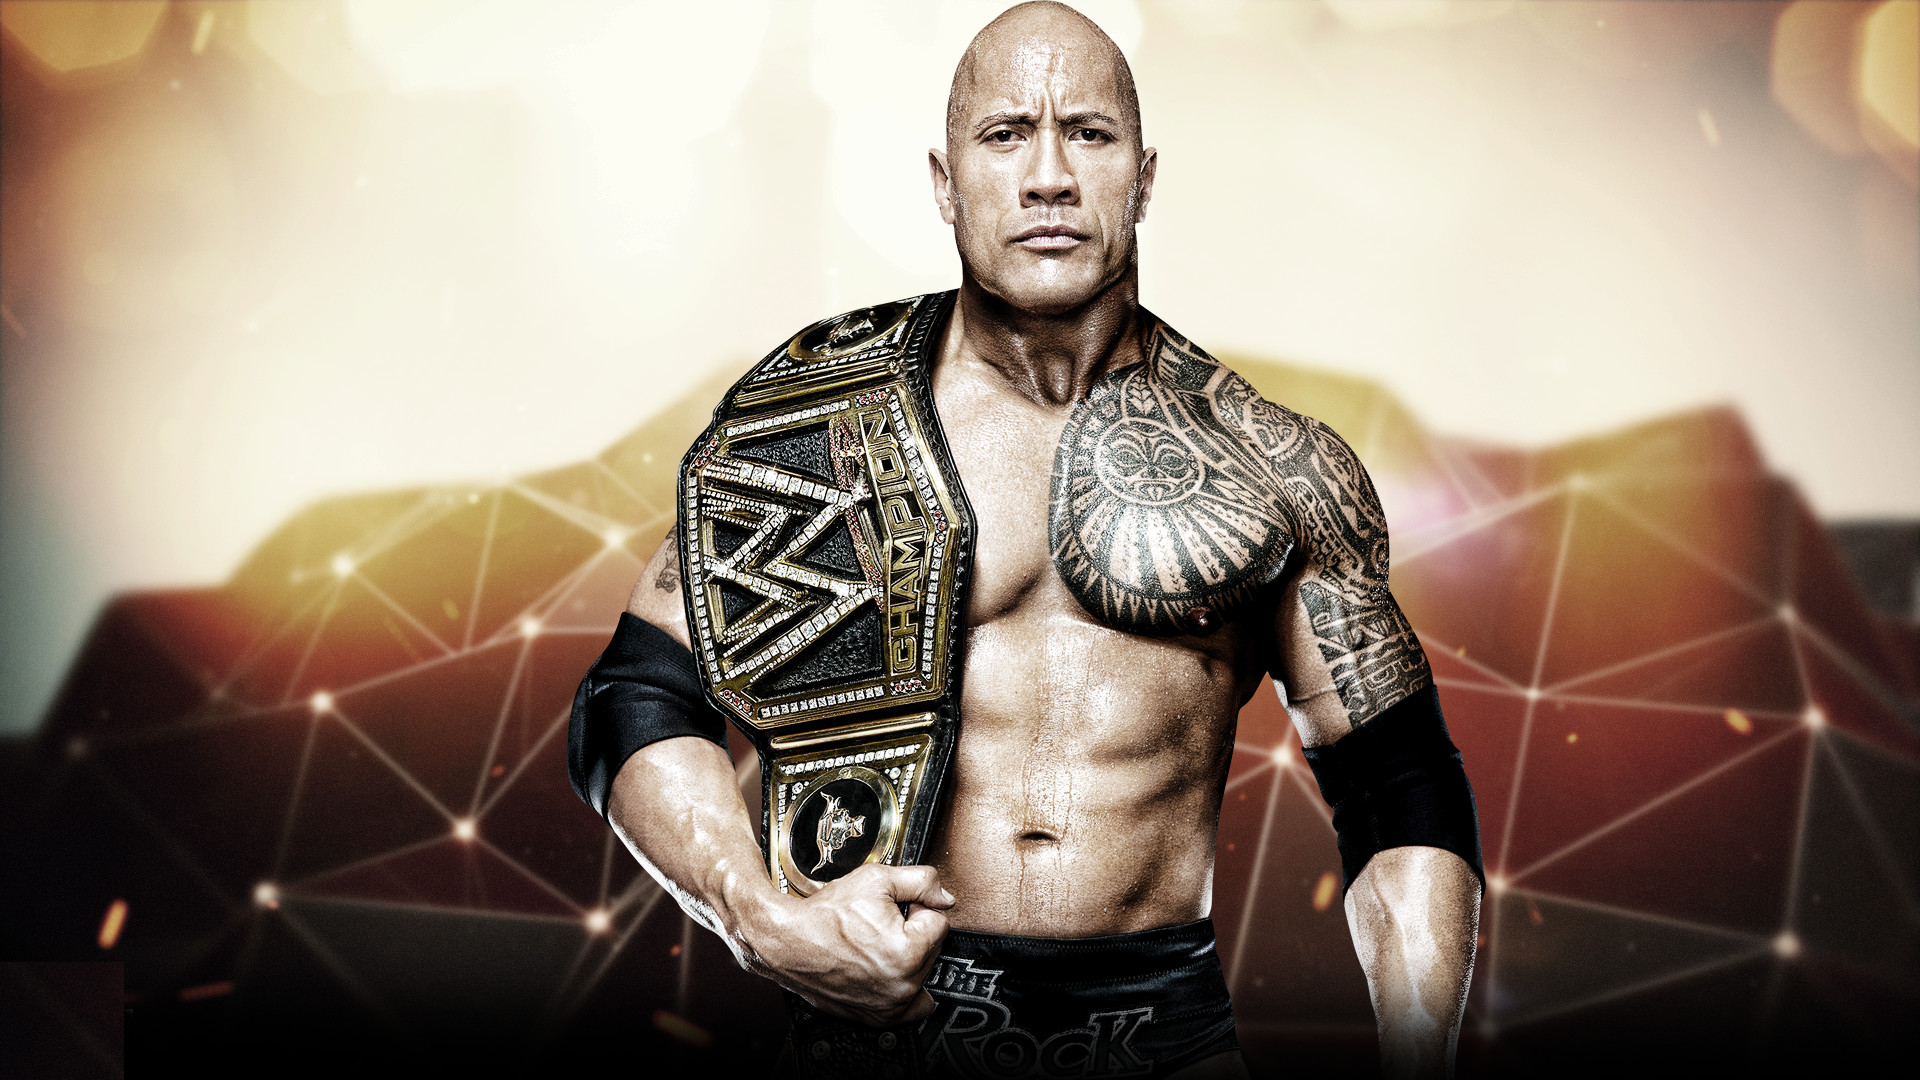 1920x1080 WWE Superstar The Rock Desktop Backgrounds